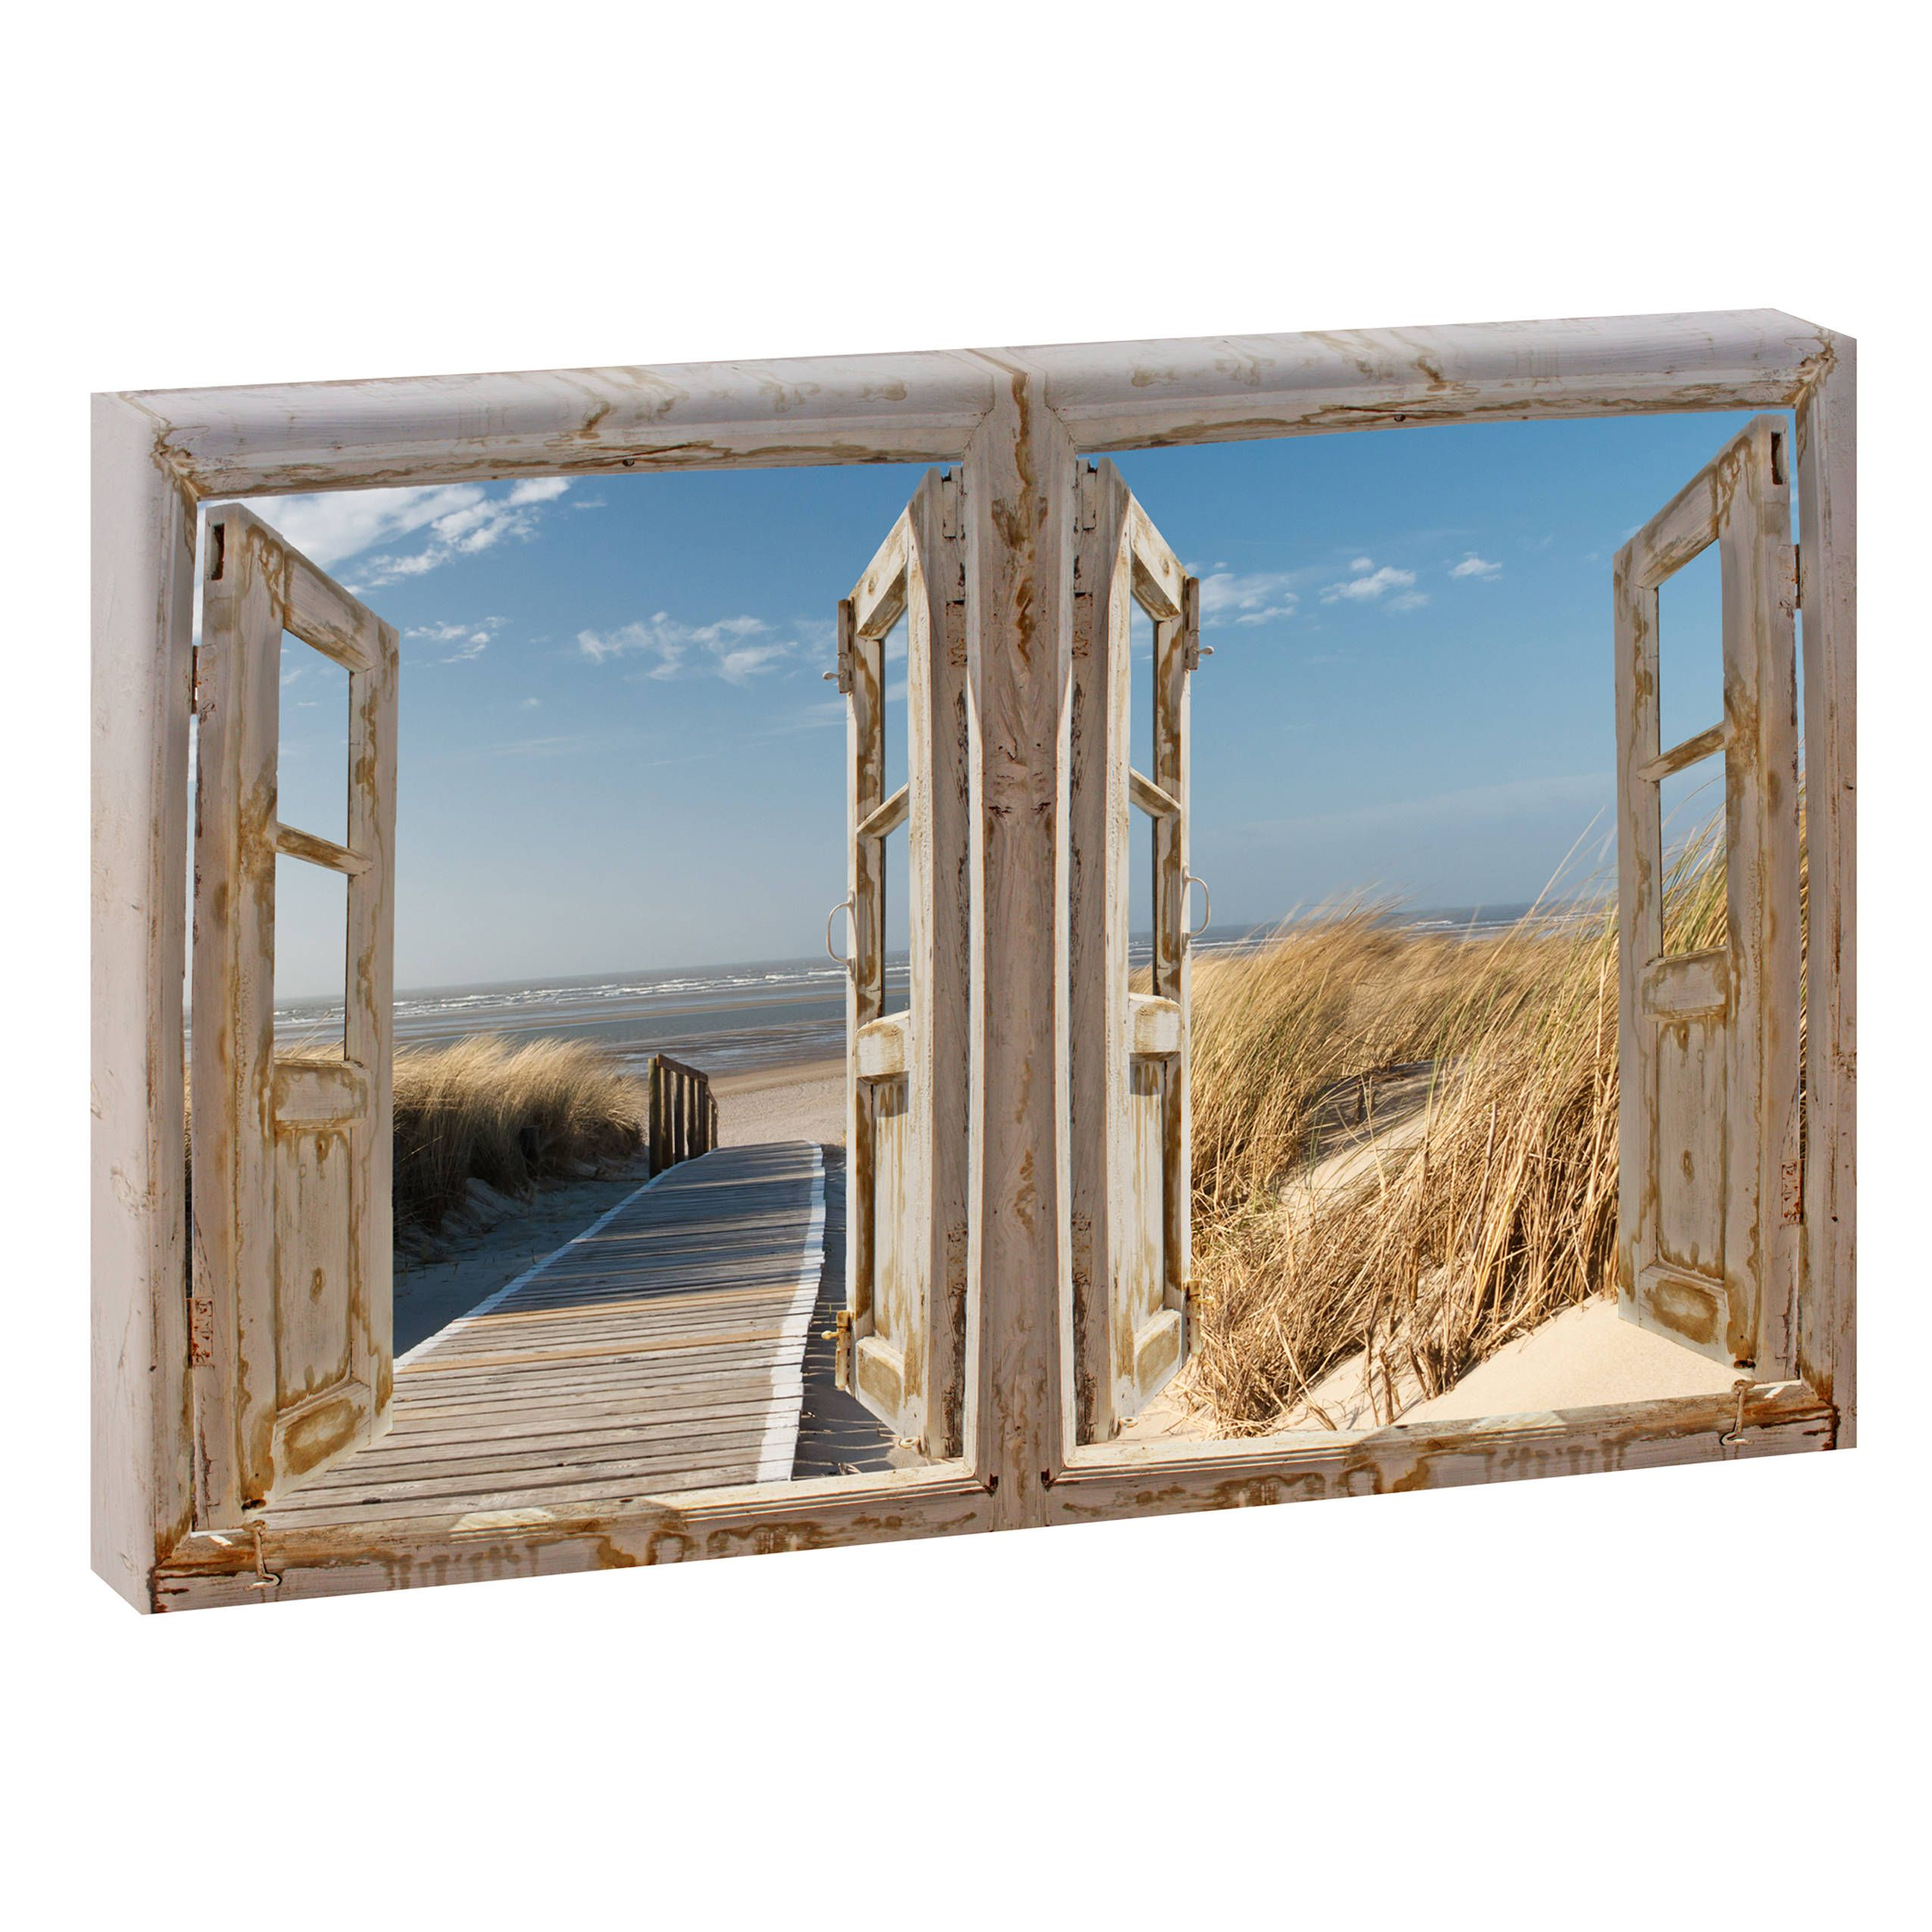 Bild Kaufen Picture Of The Beach Beach Sea Wedge Frame Canvas Poster